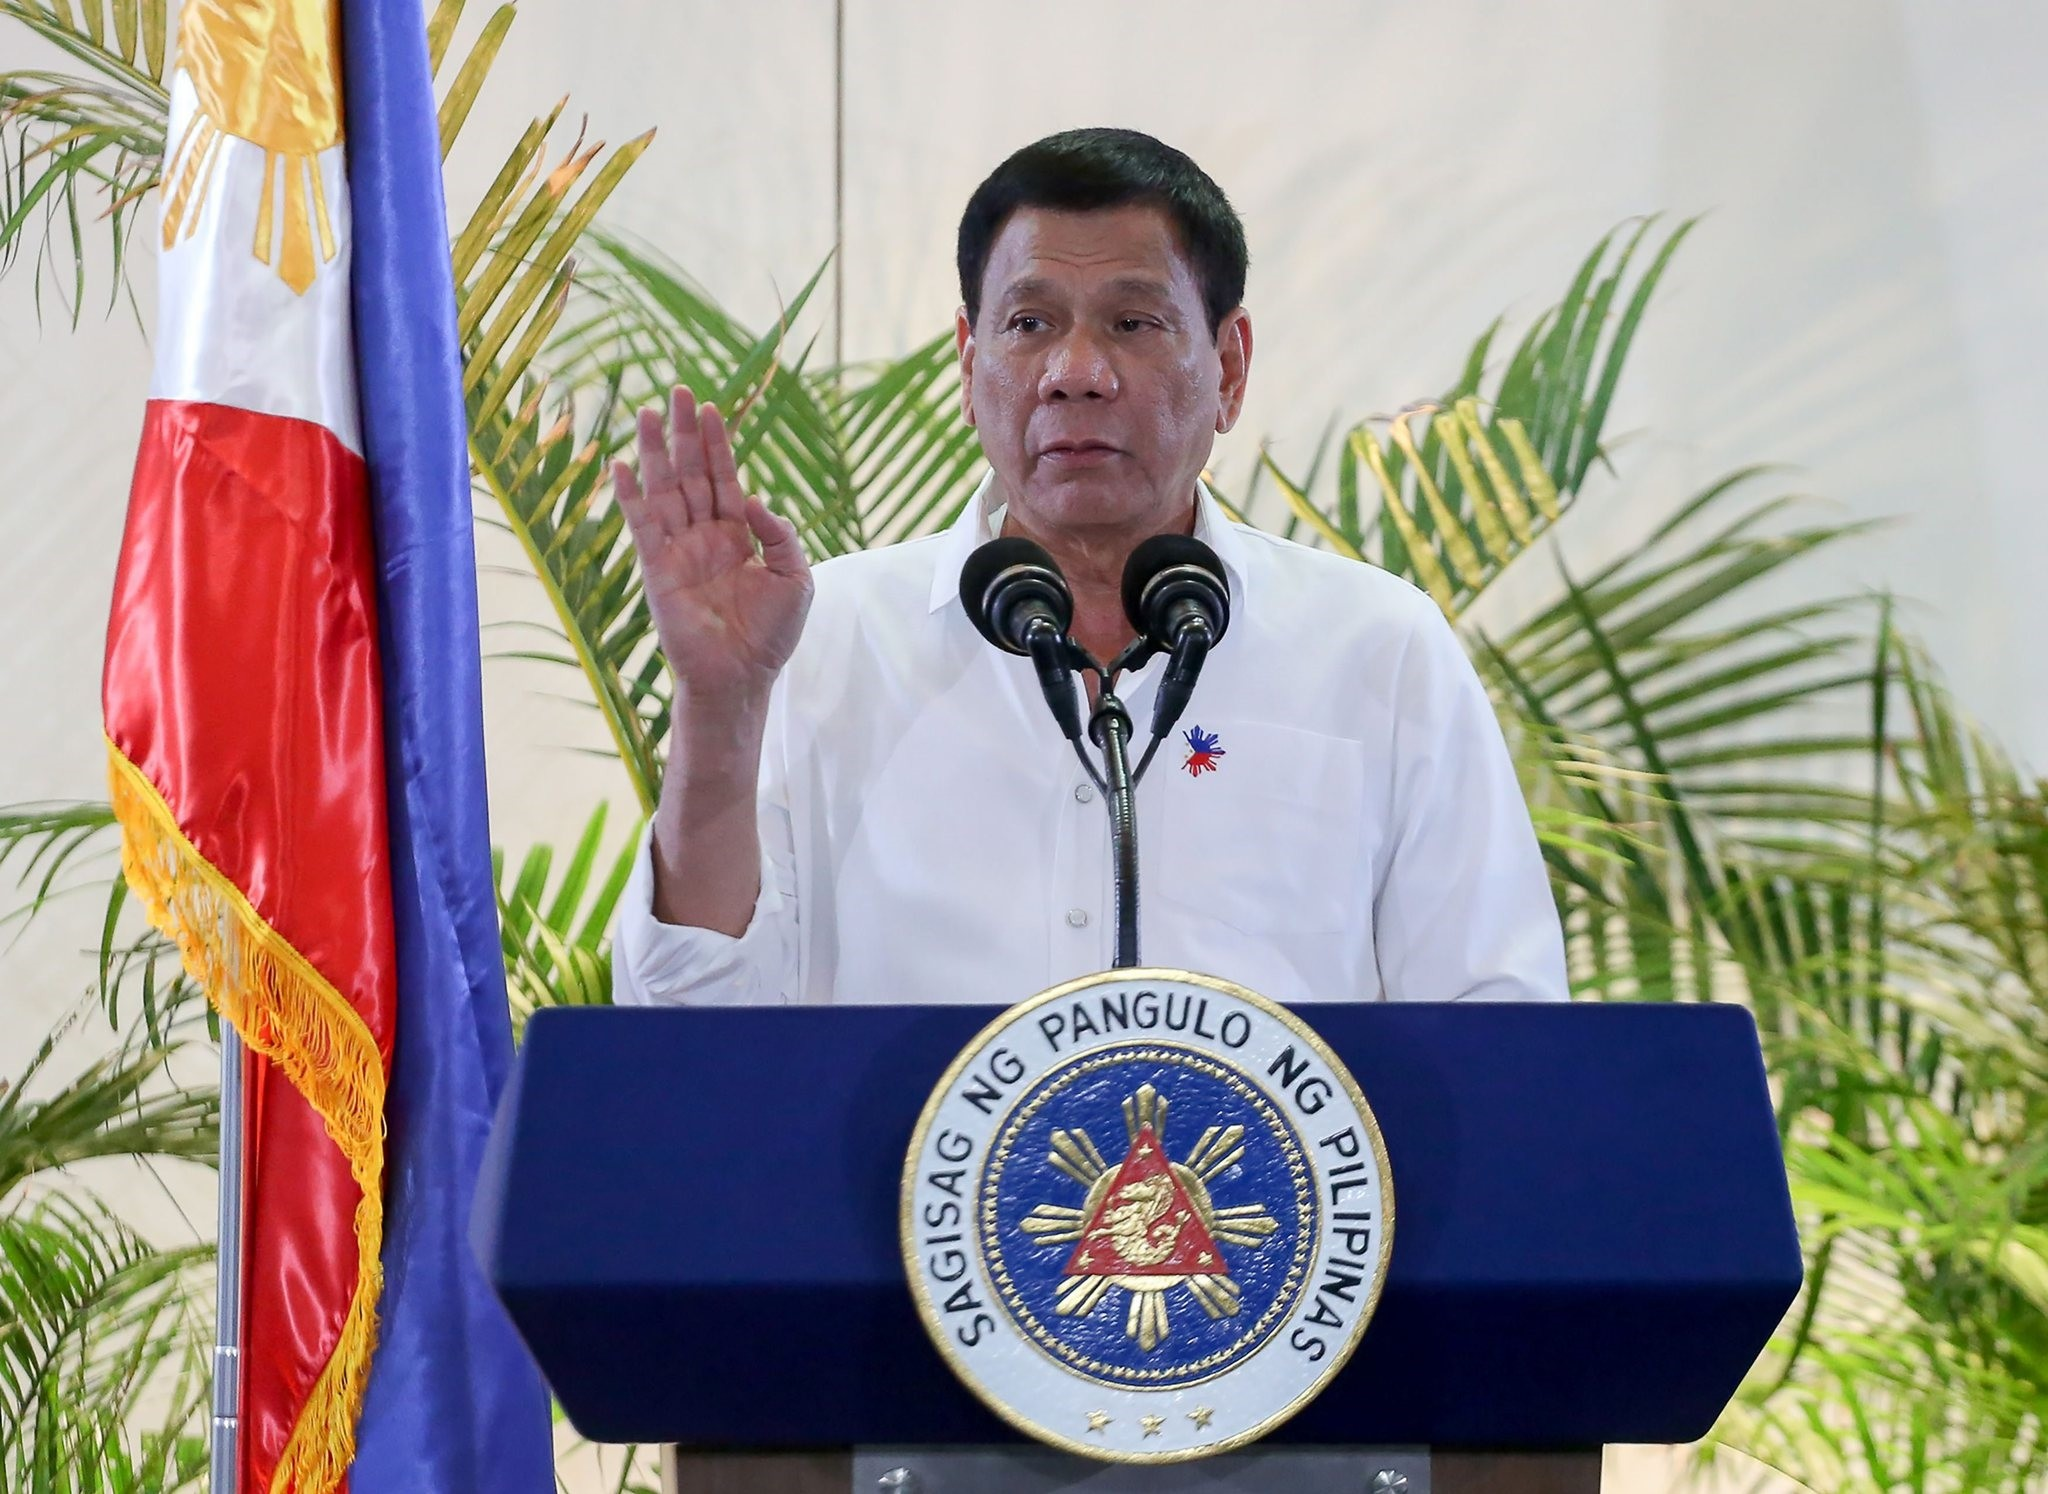 Philippine President Rodrigo Duterte gestures during a press conference shortly after arriving from Singapore at Davao international airport early December 17, 2016. (AFP Photo)